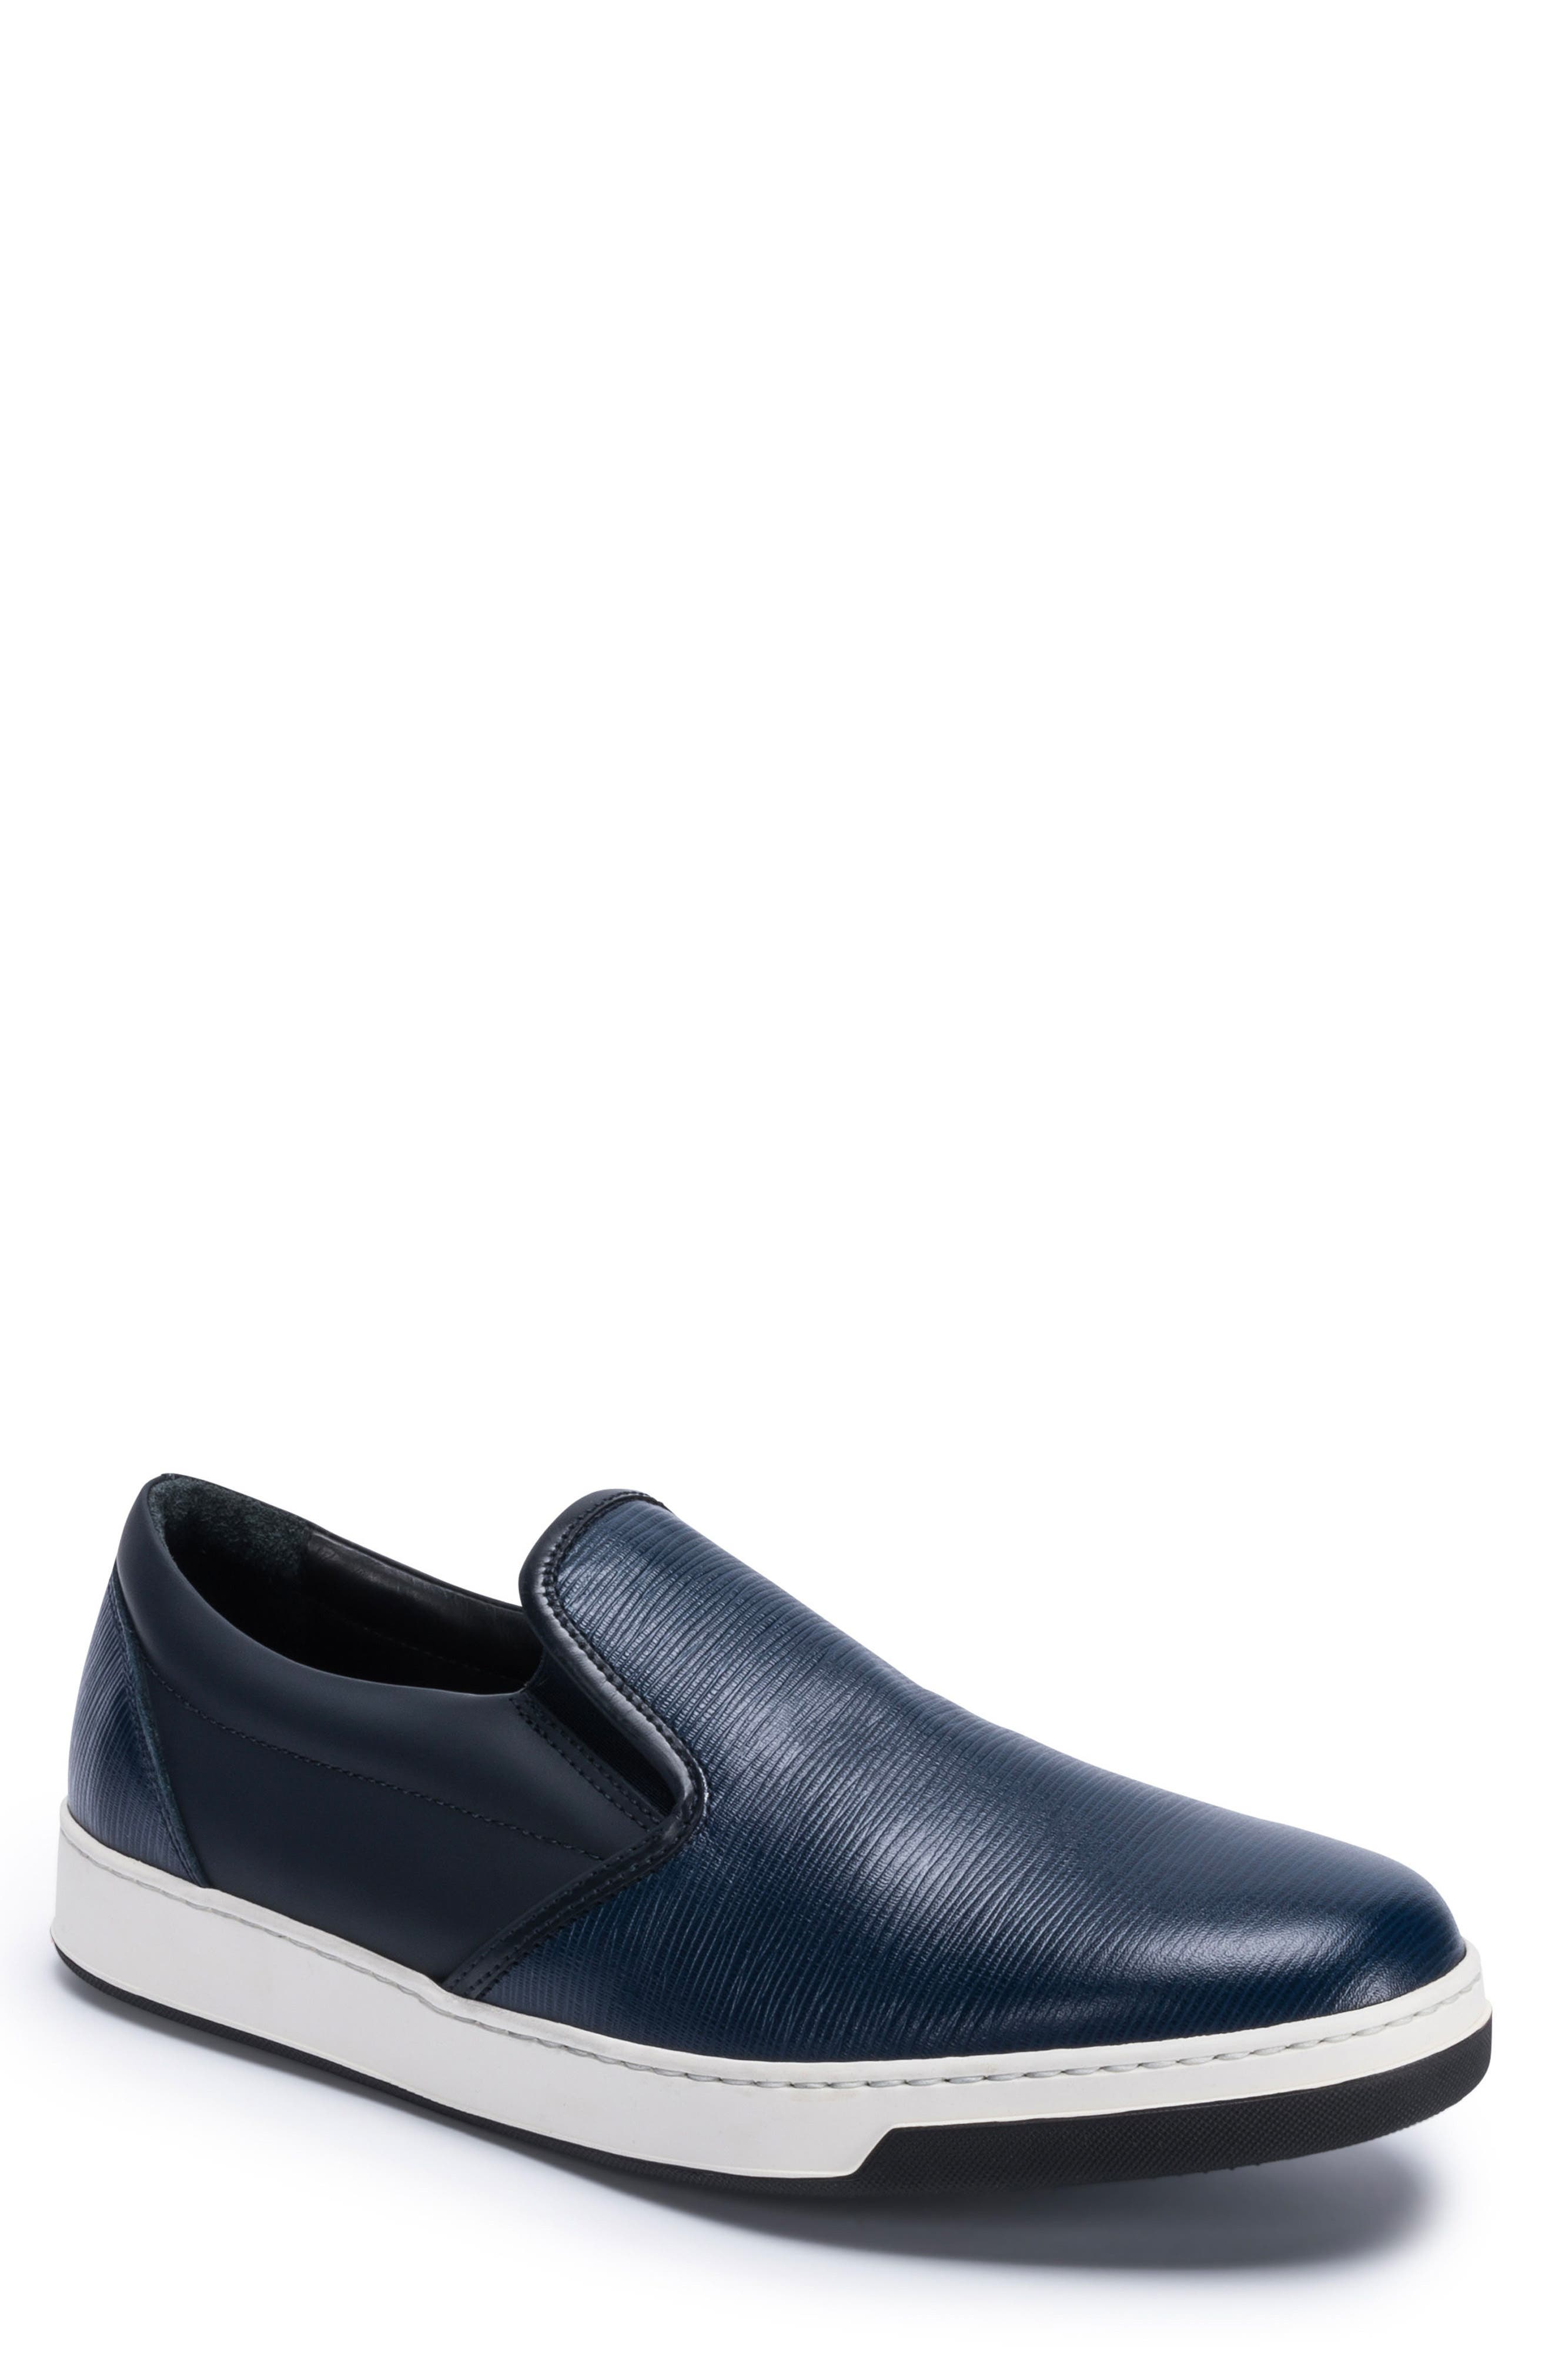 Santorini Slip-On Sneaker,                             Main thumbnail 1, color,                             Blue